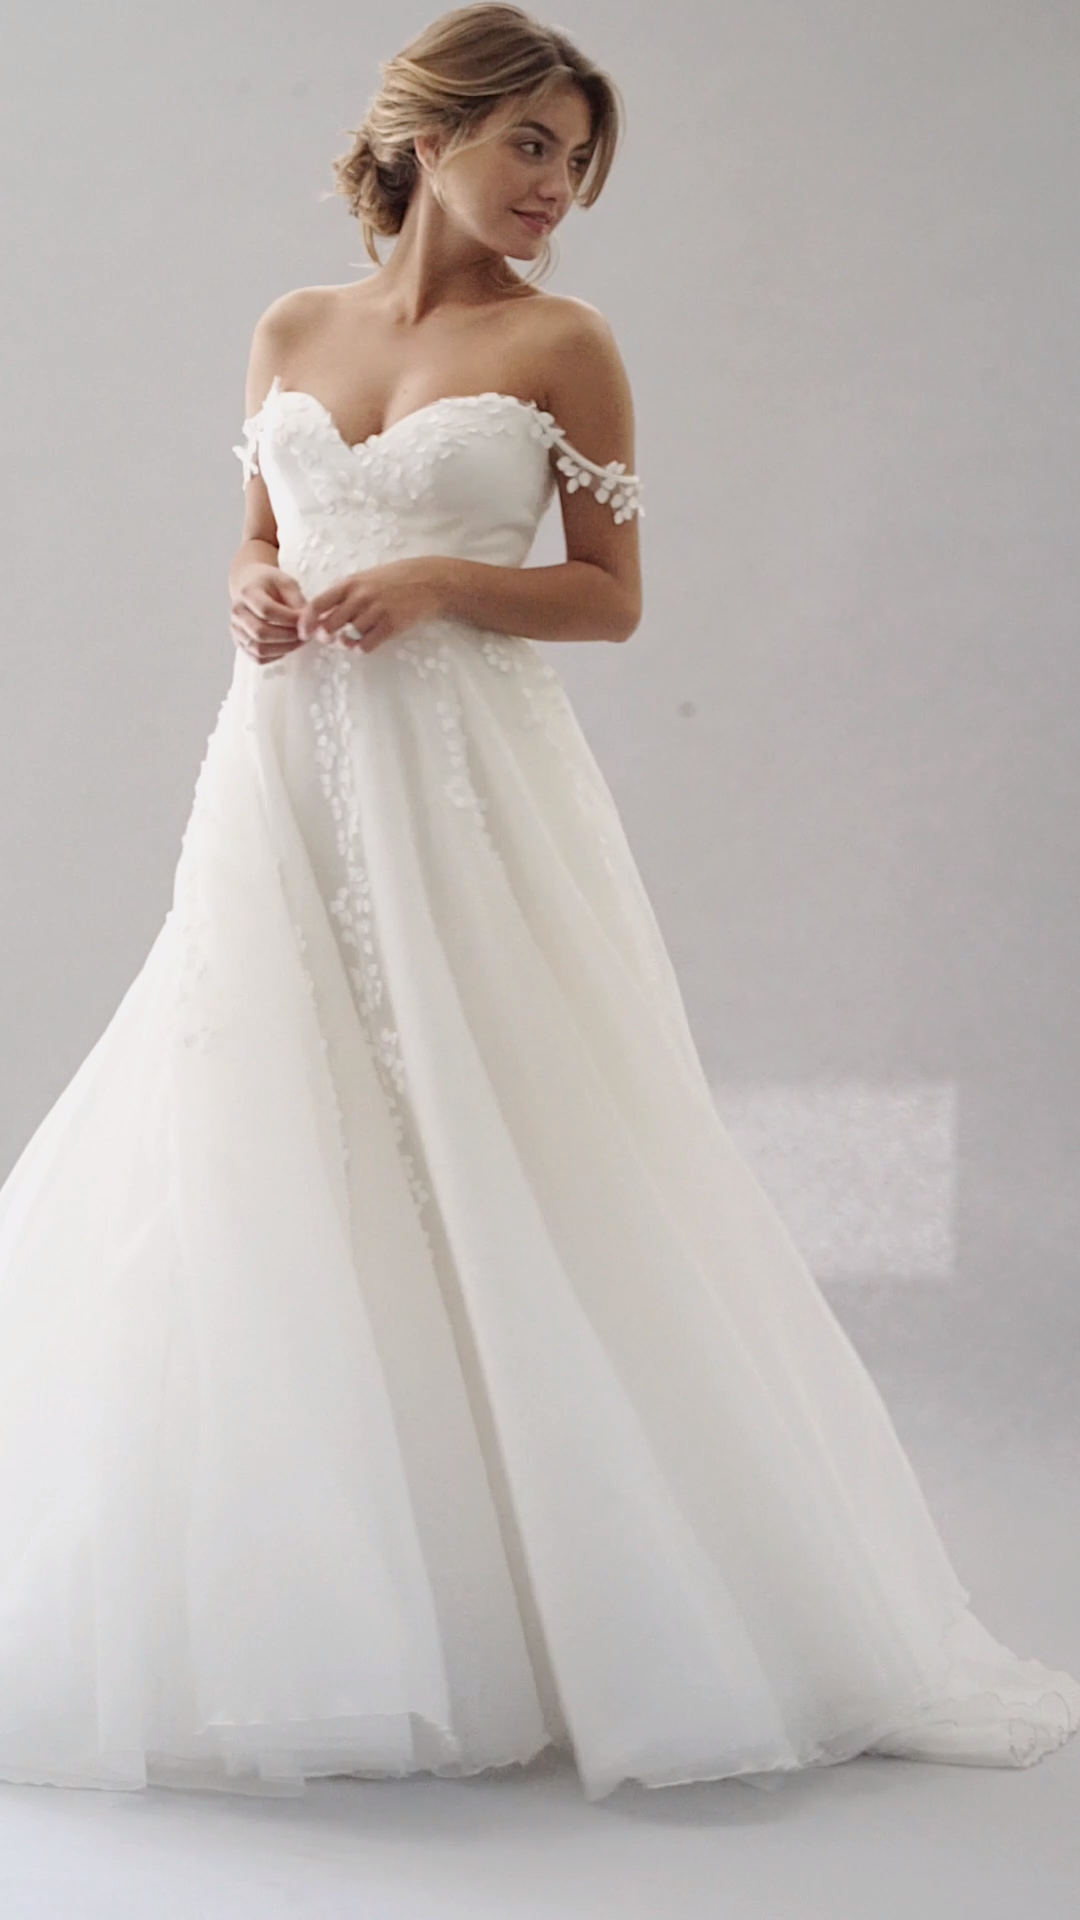 """Elegant Embellished Strapless Sweetheart A-Lane Wedding Dress / Bridal Gown with a Train. Collection """"Love Stories"""" 2019 by Stephanie Allin"""